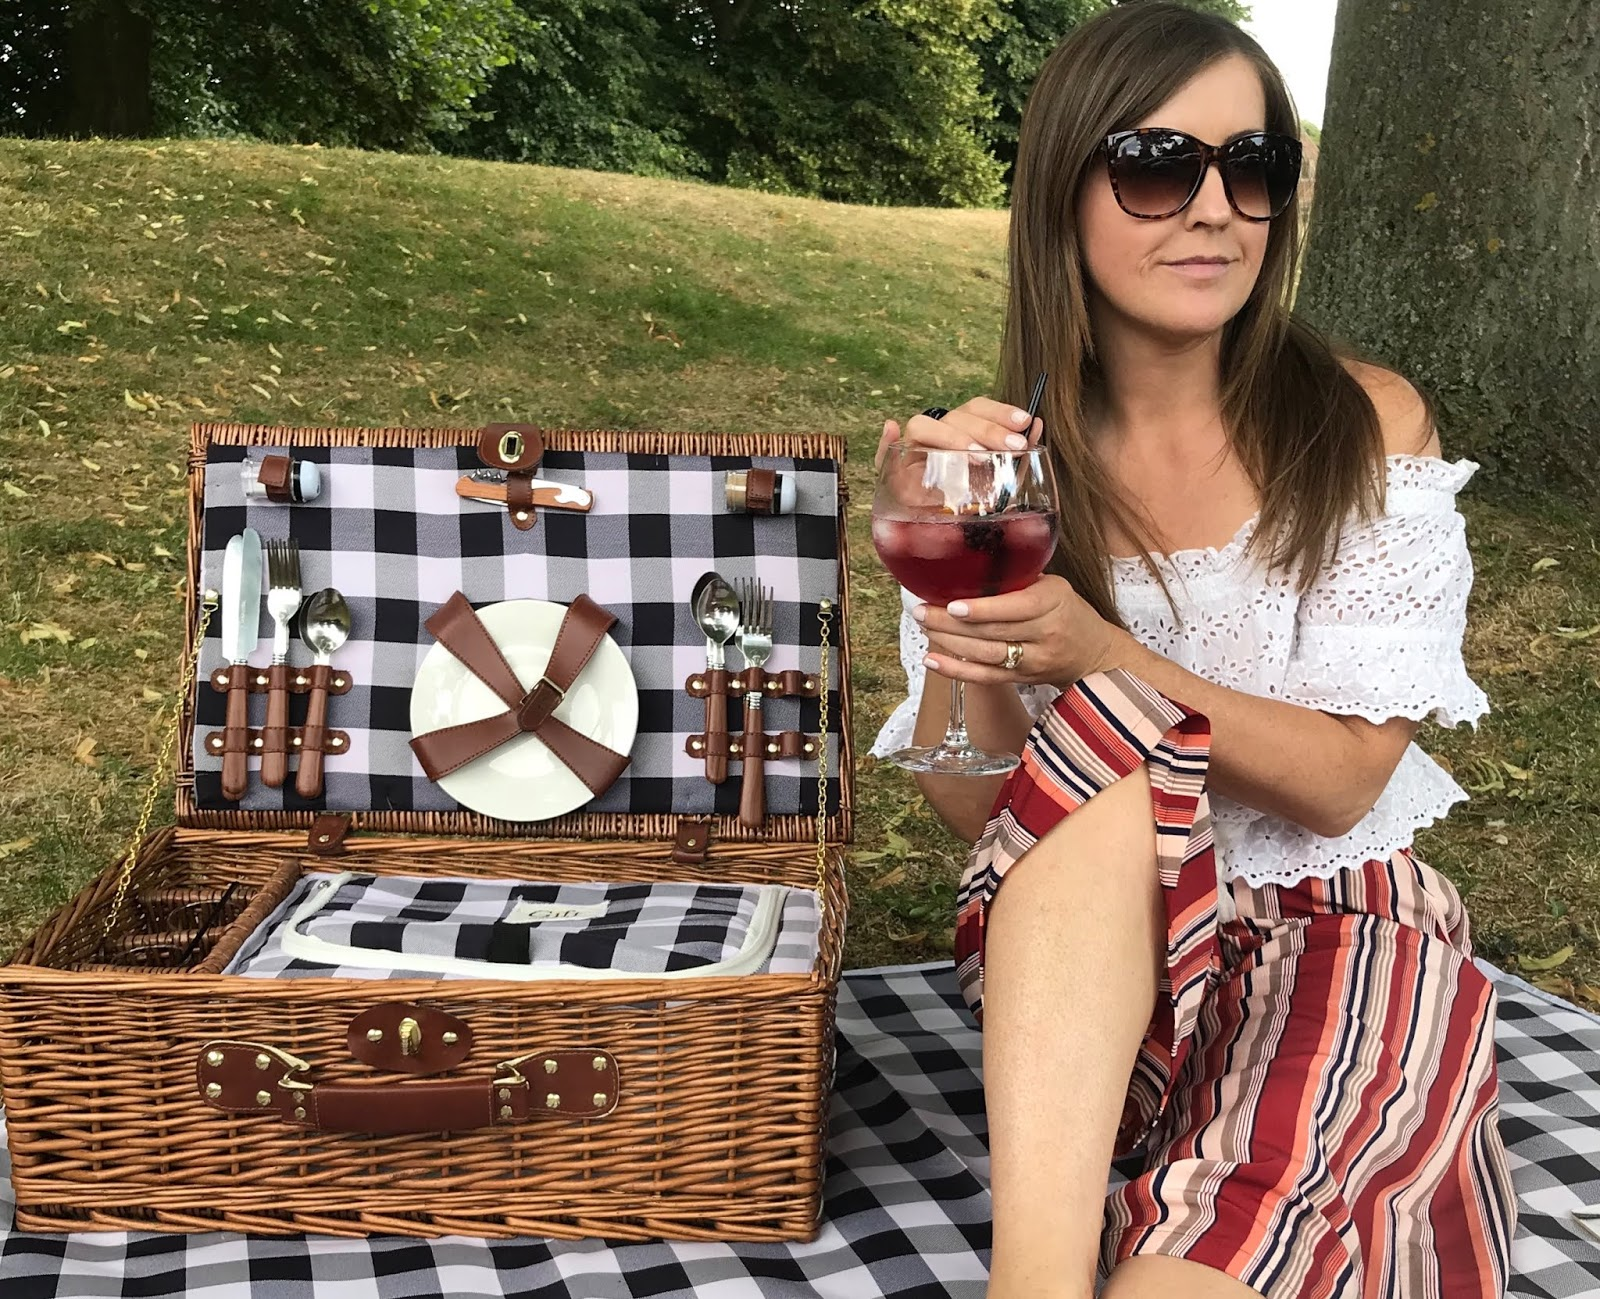 Gin and tonic picnic at Rufford Abbey and country park \ The Gift Company picnic hamper